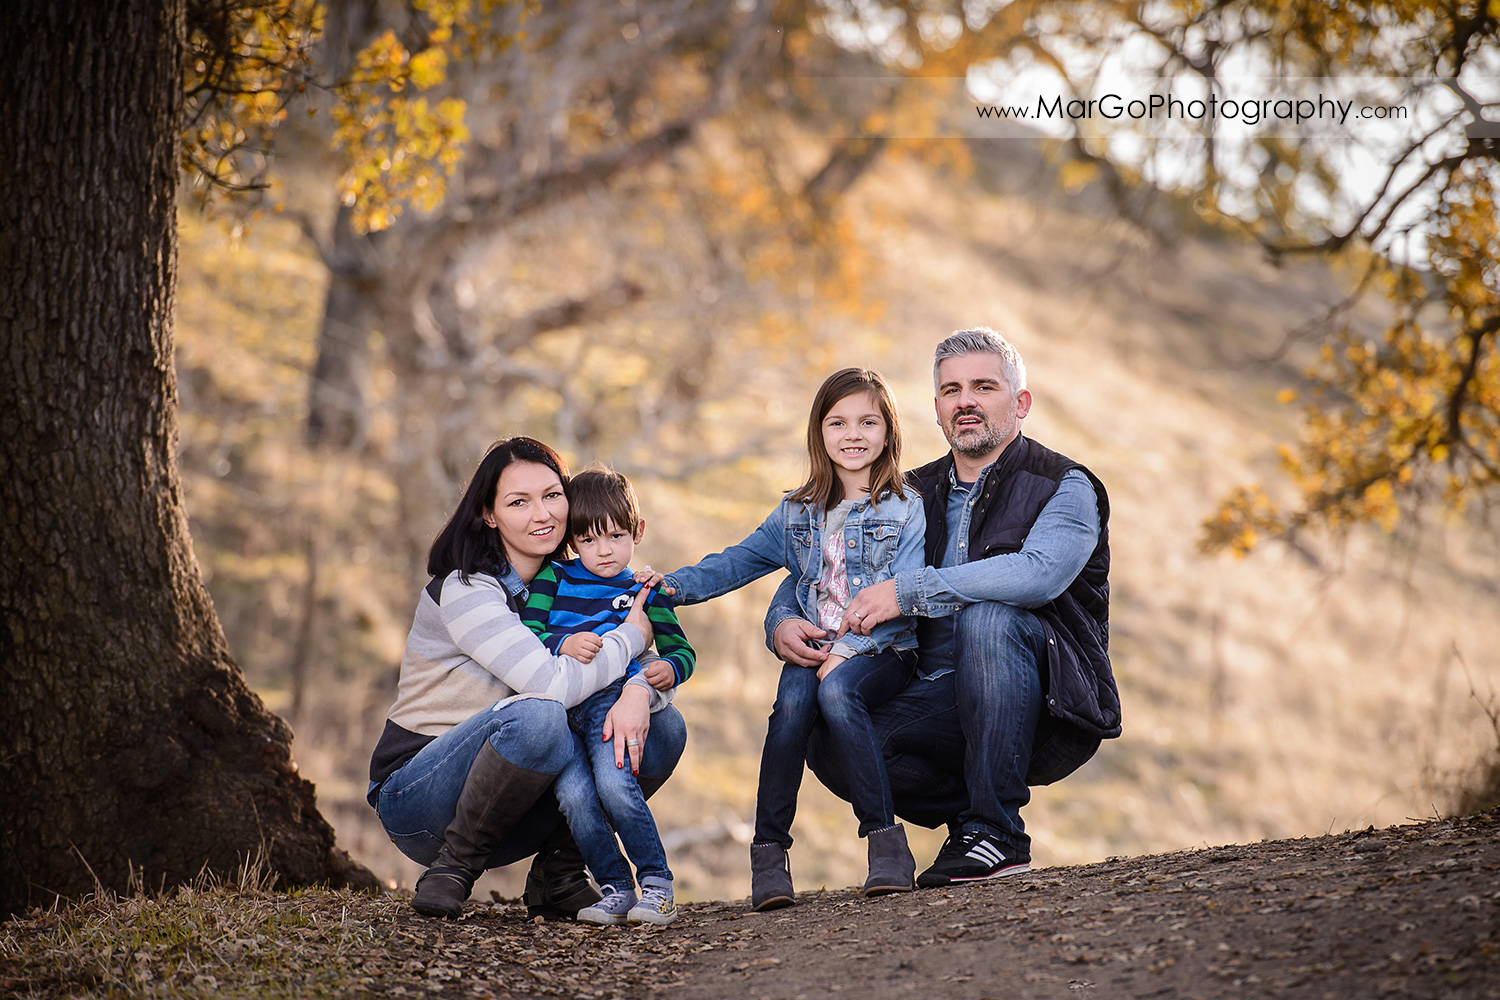 full body horizontal portrait of family of four during family session at Diablo Foothills Regional Park in Walnut Creek